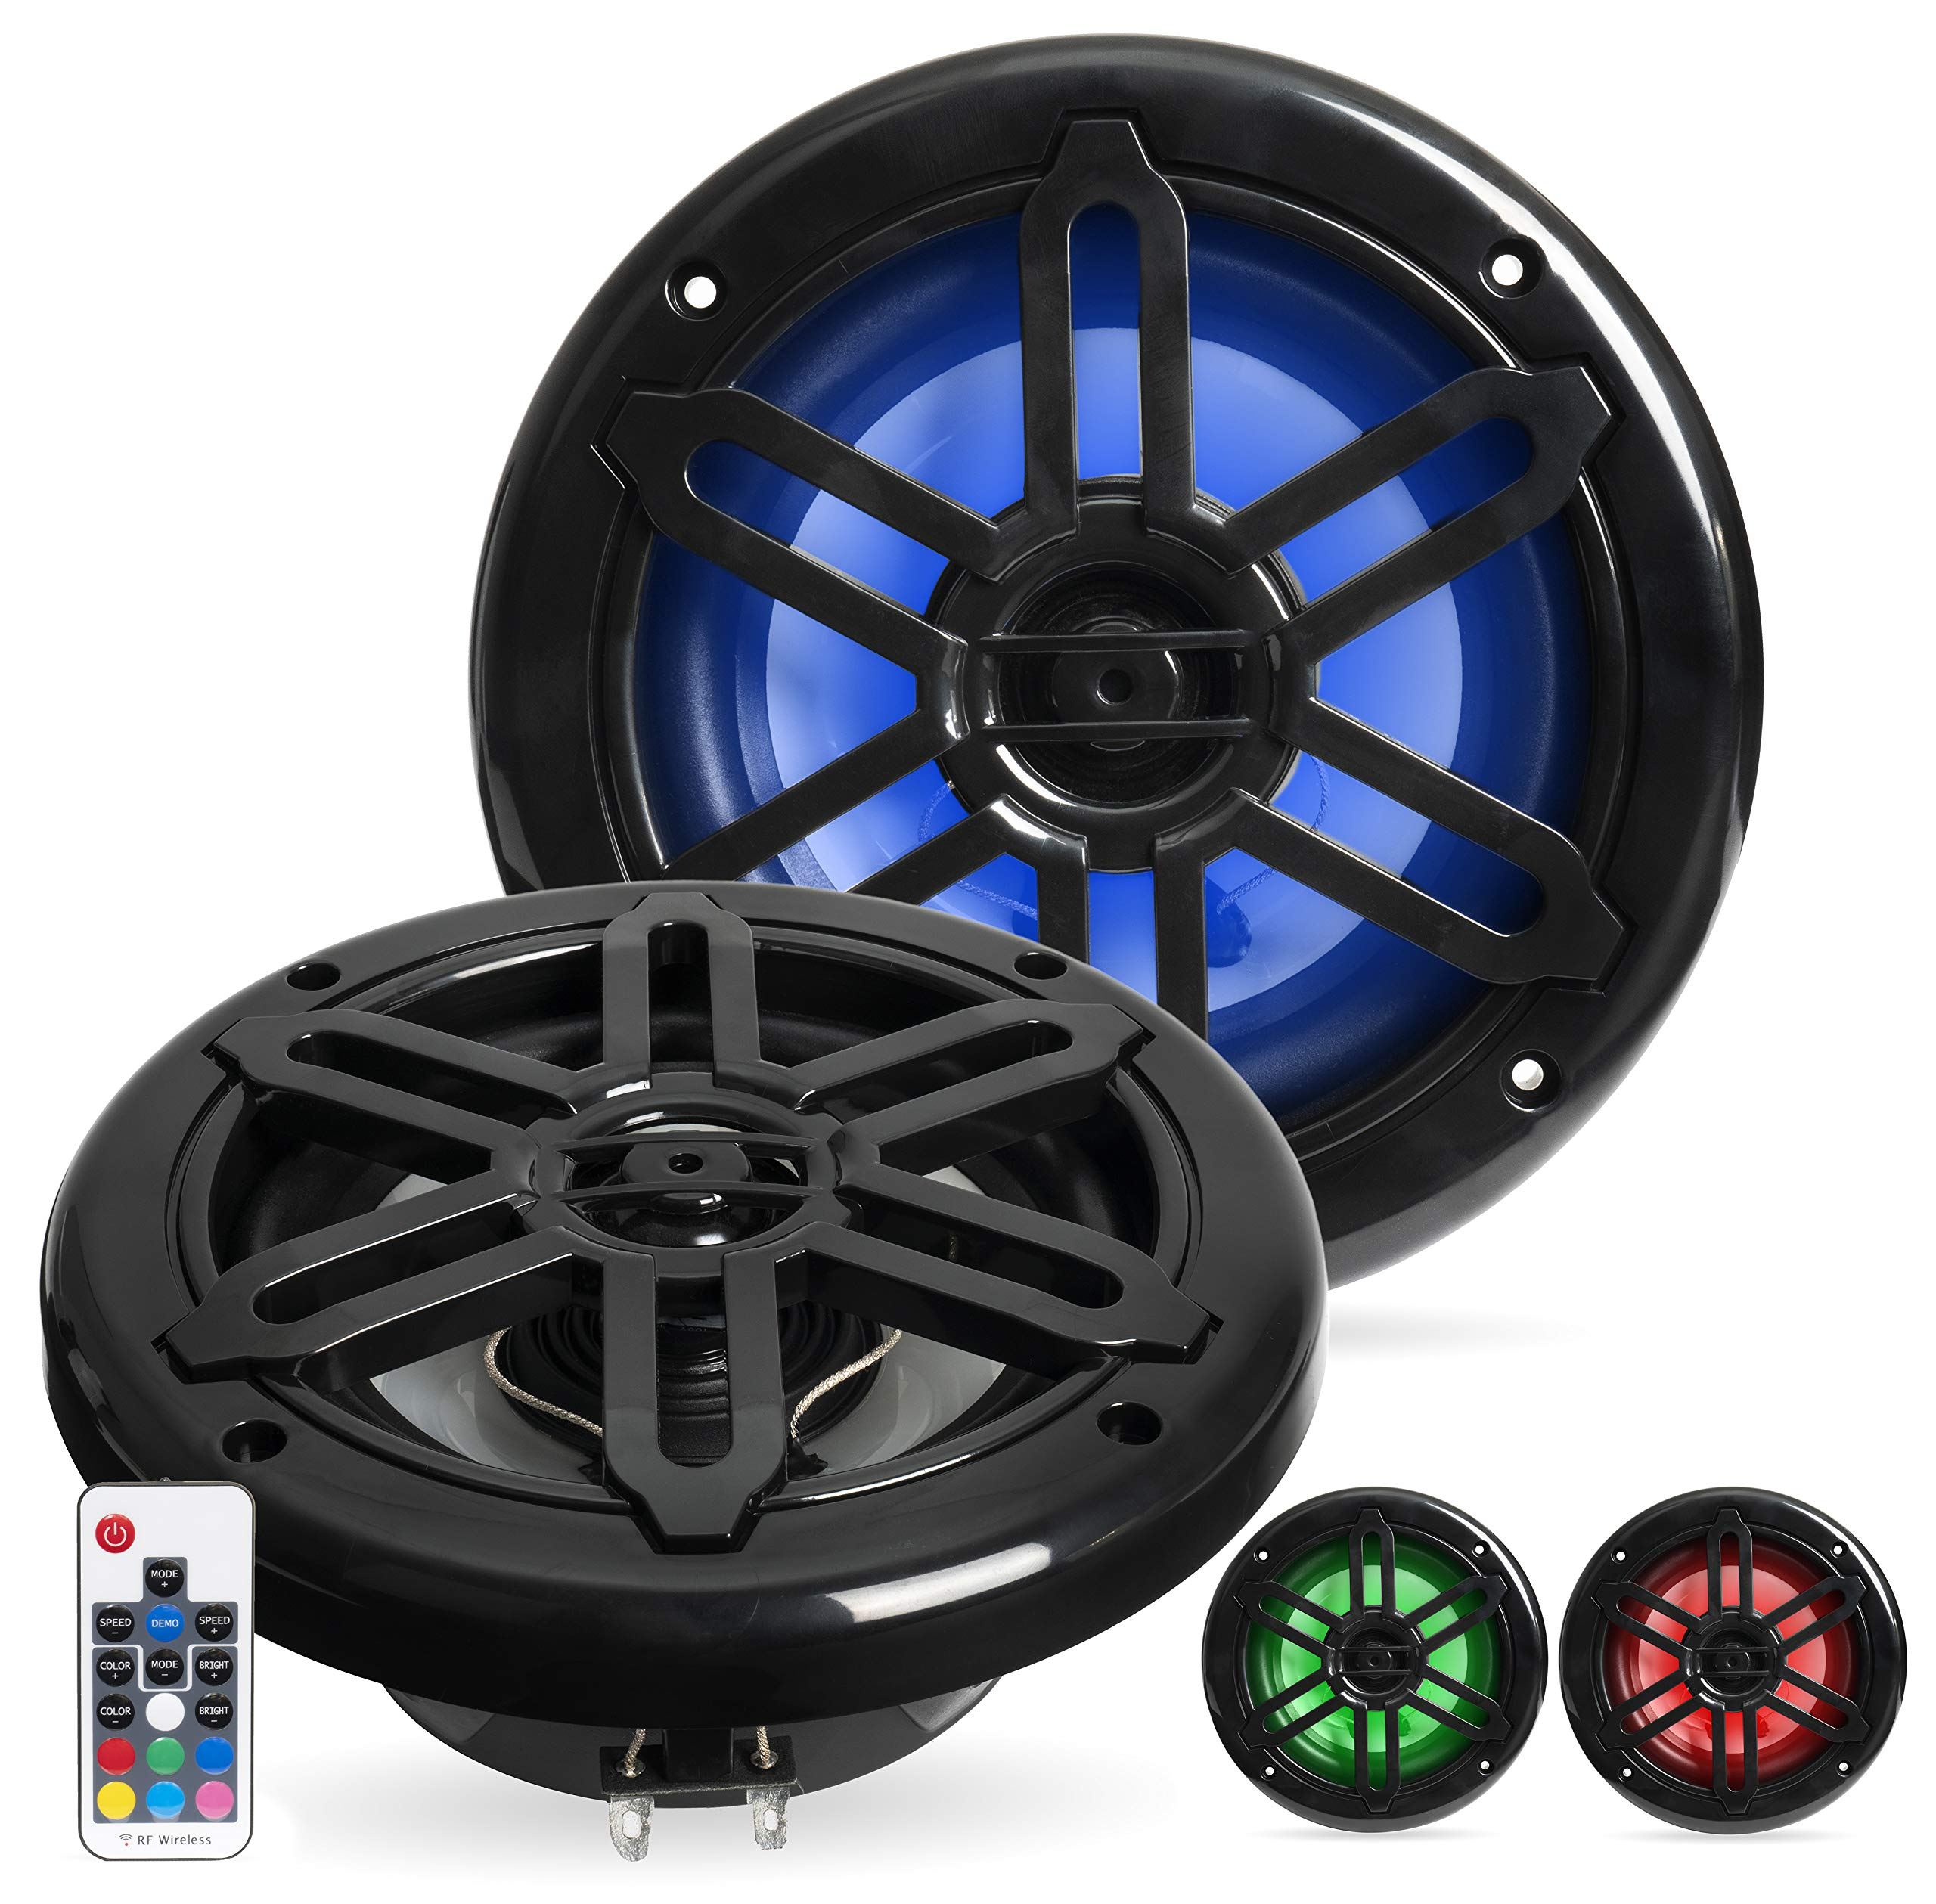 Belva BMRGBBK 500W Black 6.5-inch 2-Way Water-Resistant Marine Speakers with RGB Illumination by Belva